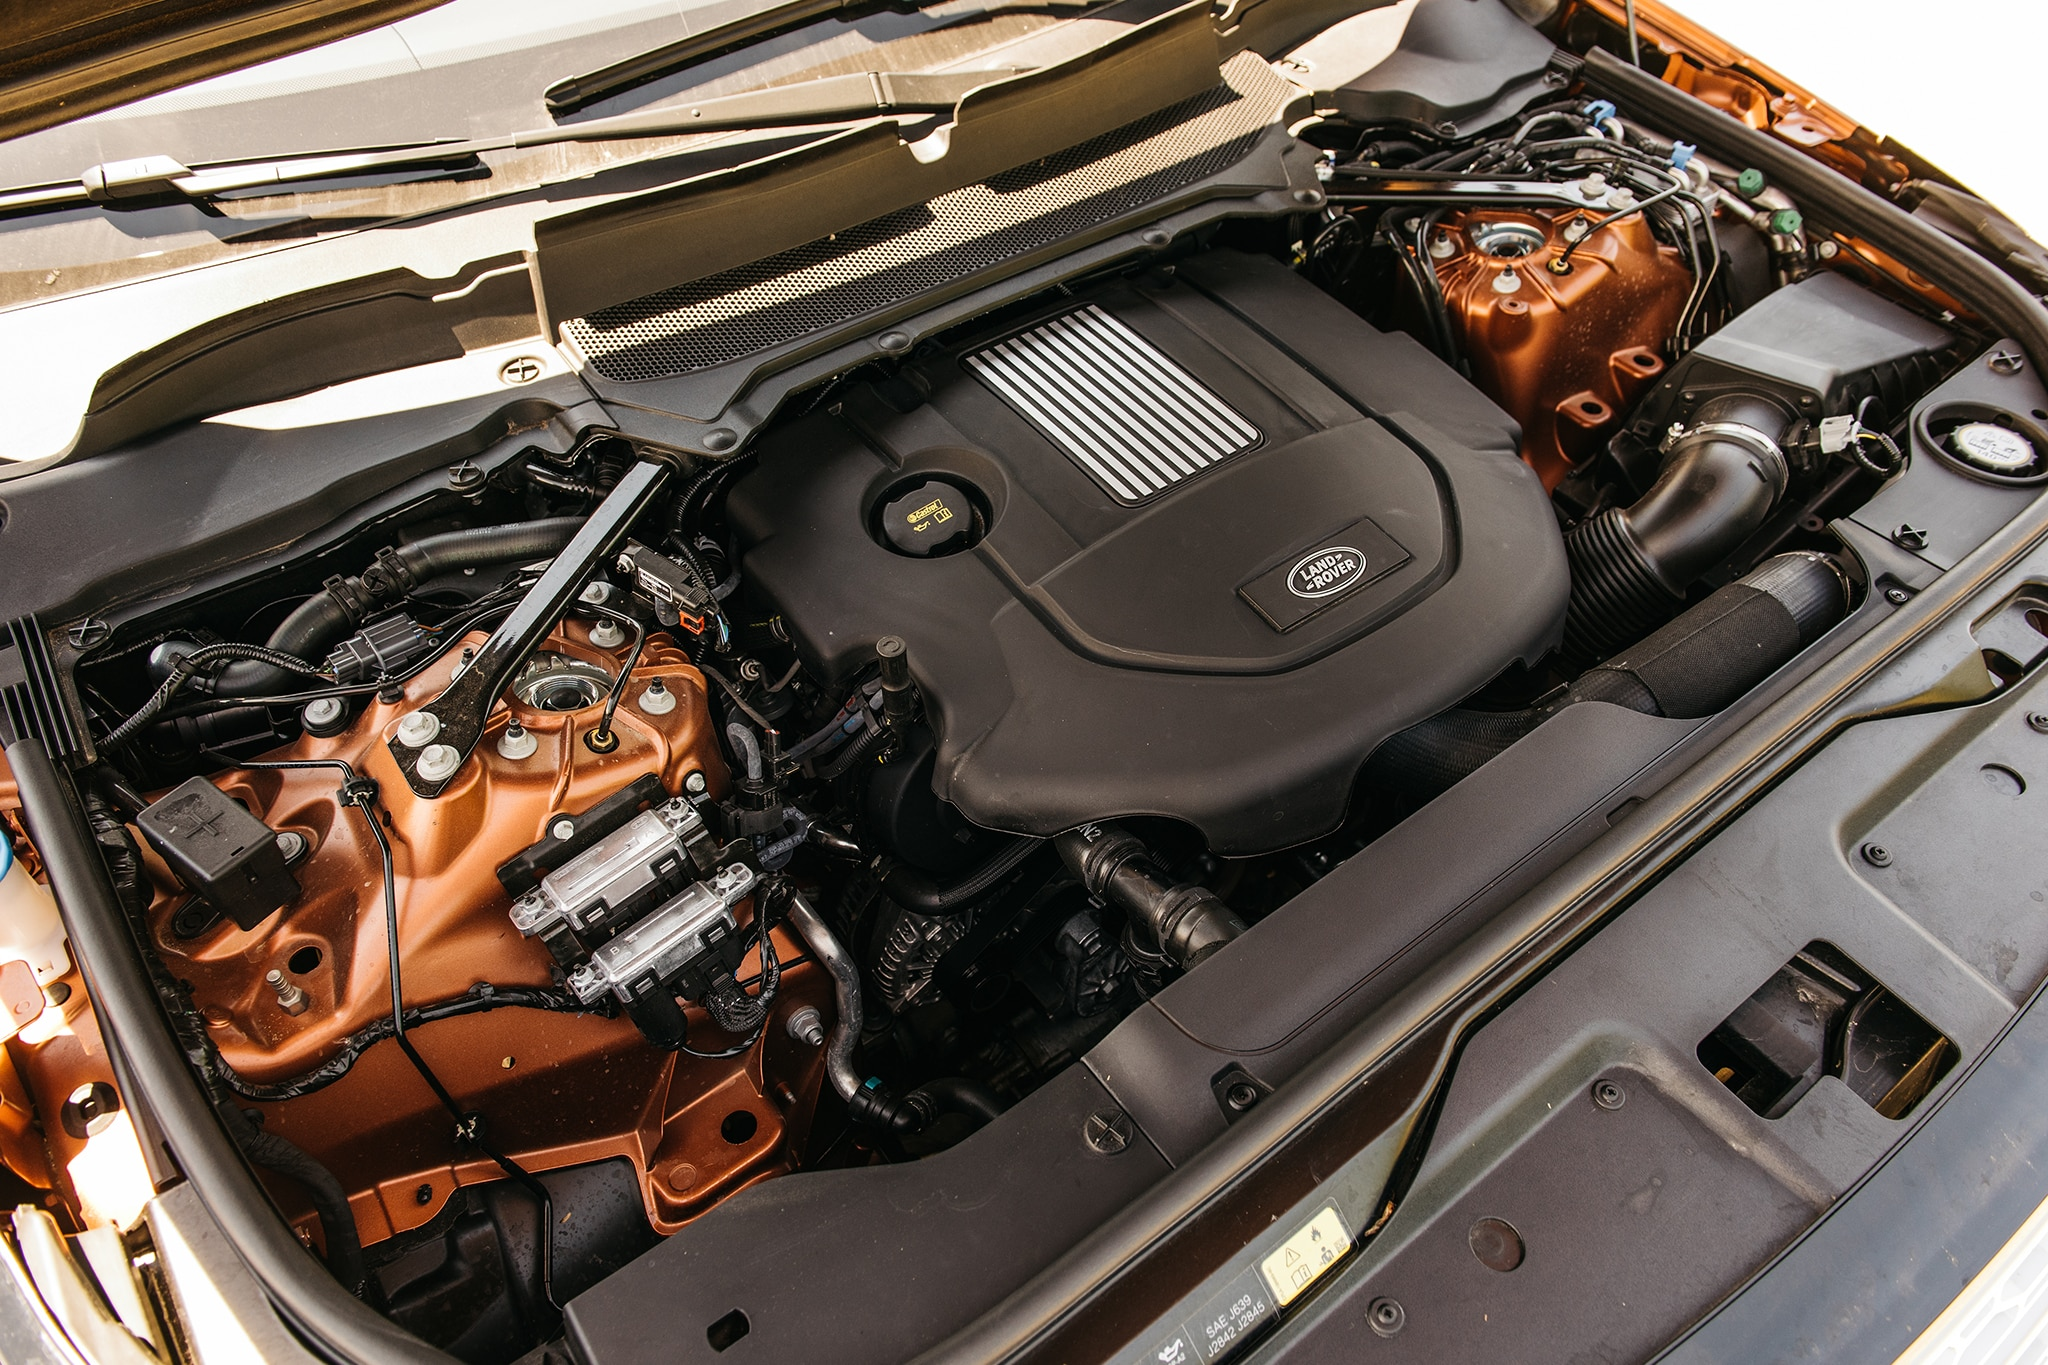 2017 Land Rover Discovery Td6 HSE Engine